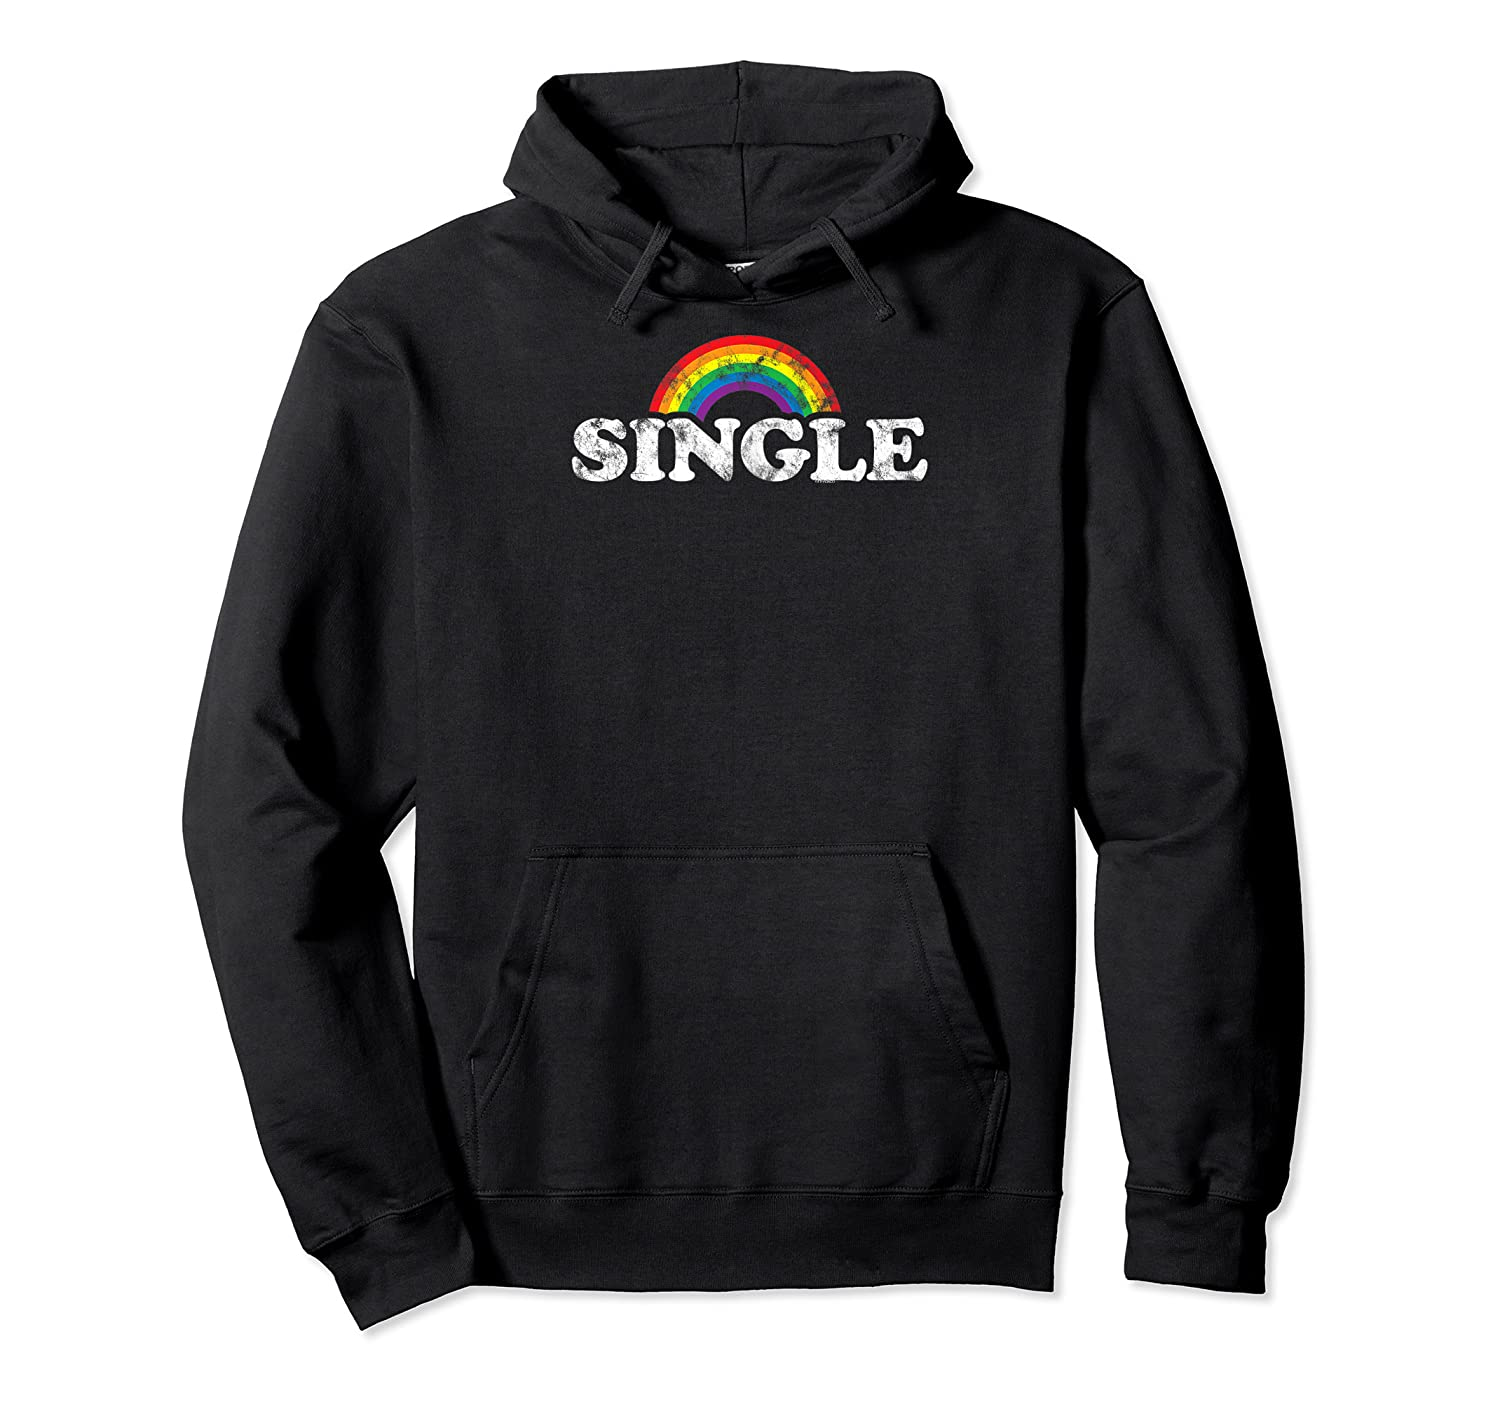 S Single With Rainbow   Gay Pride Lgbt Shirt For Guys Unisex Pullover Hoodie